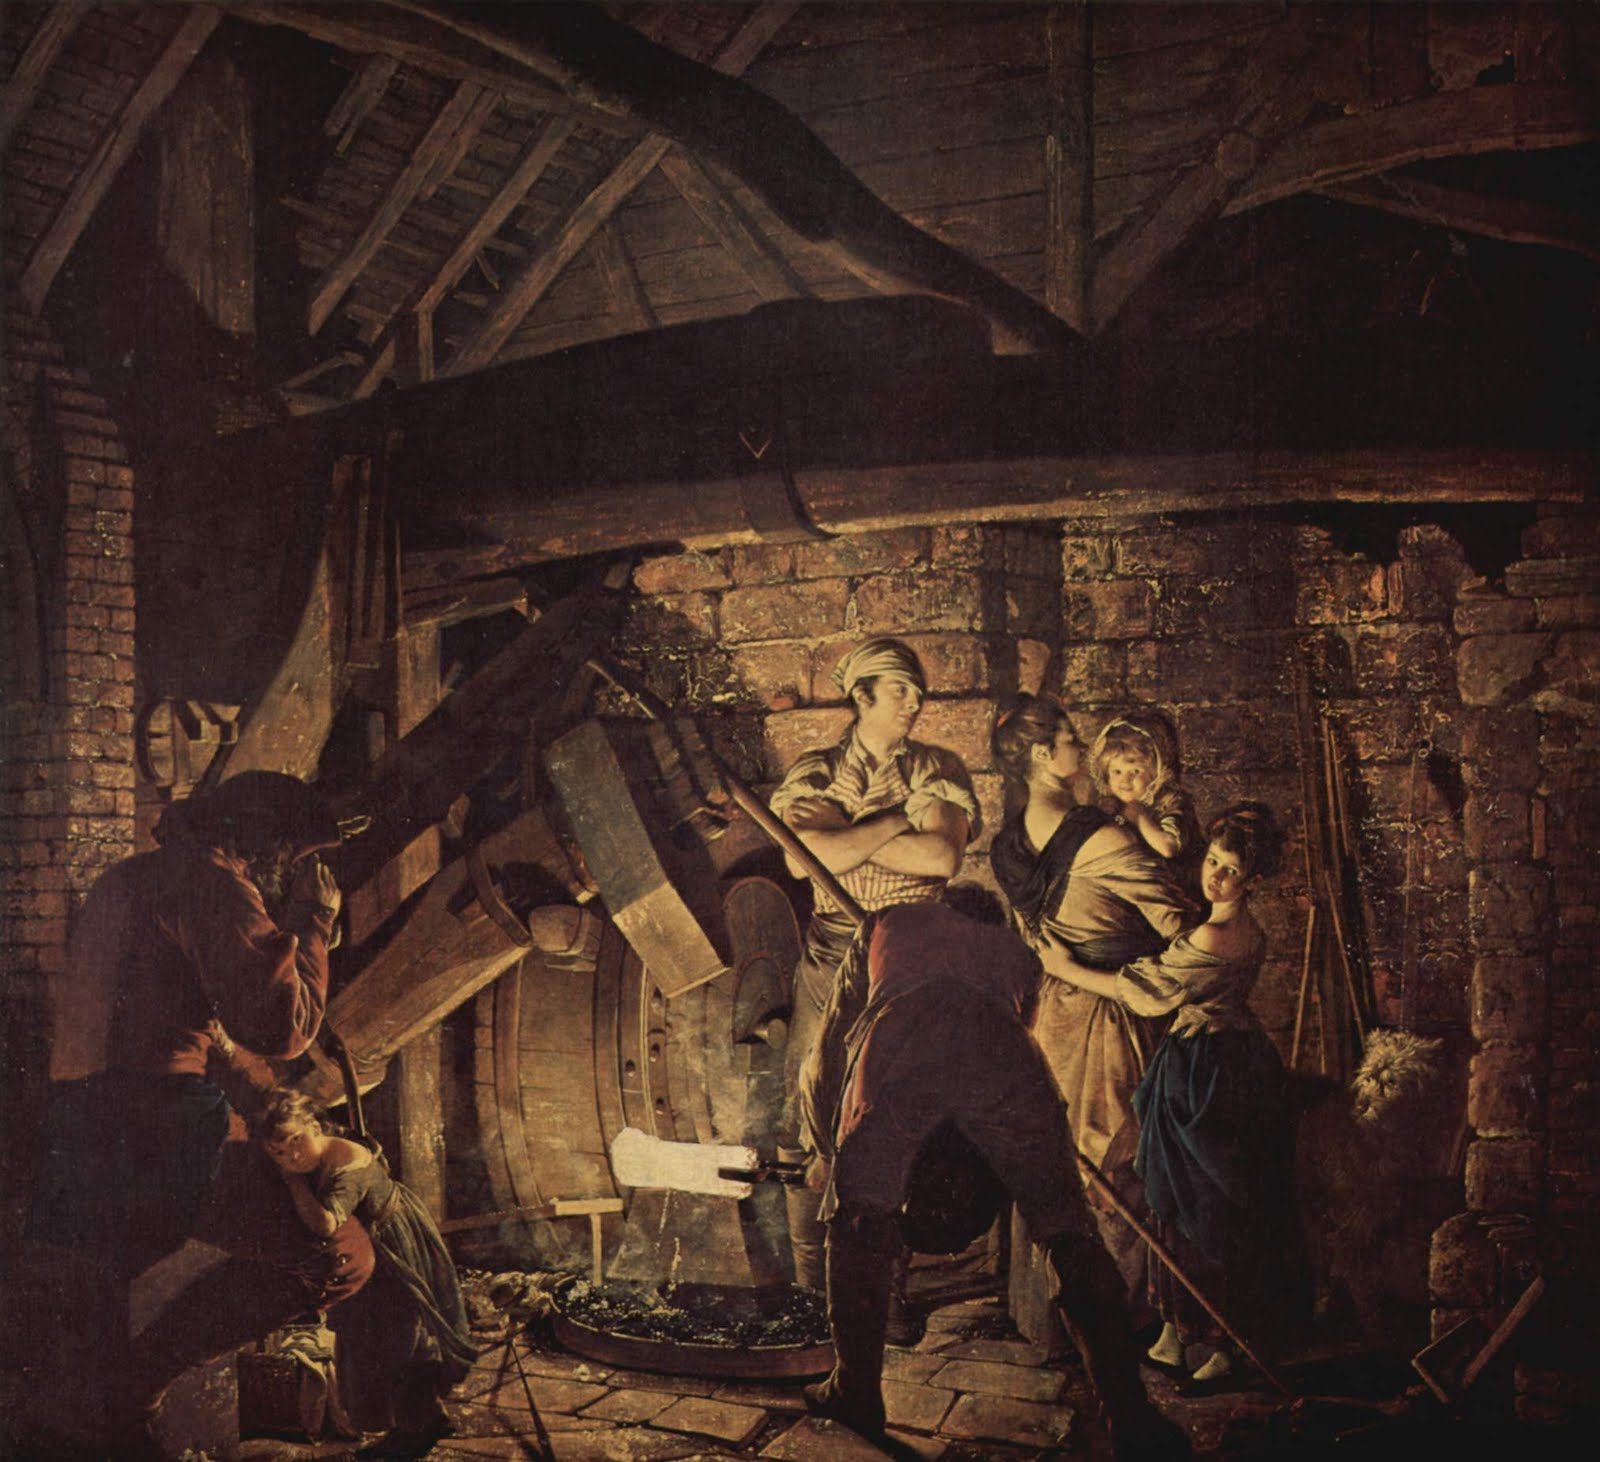 Joseph_Wright_Blacksmith.jpg